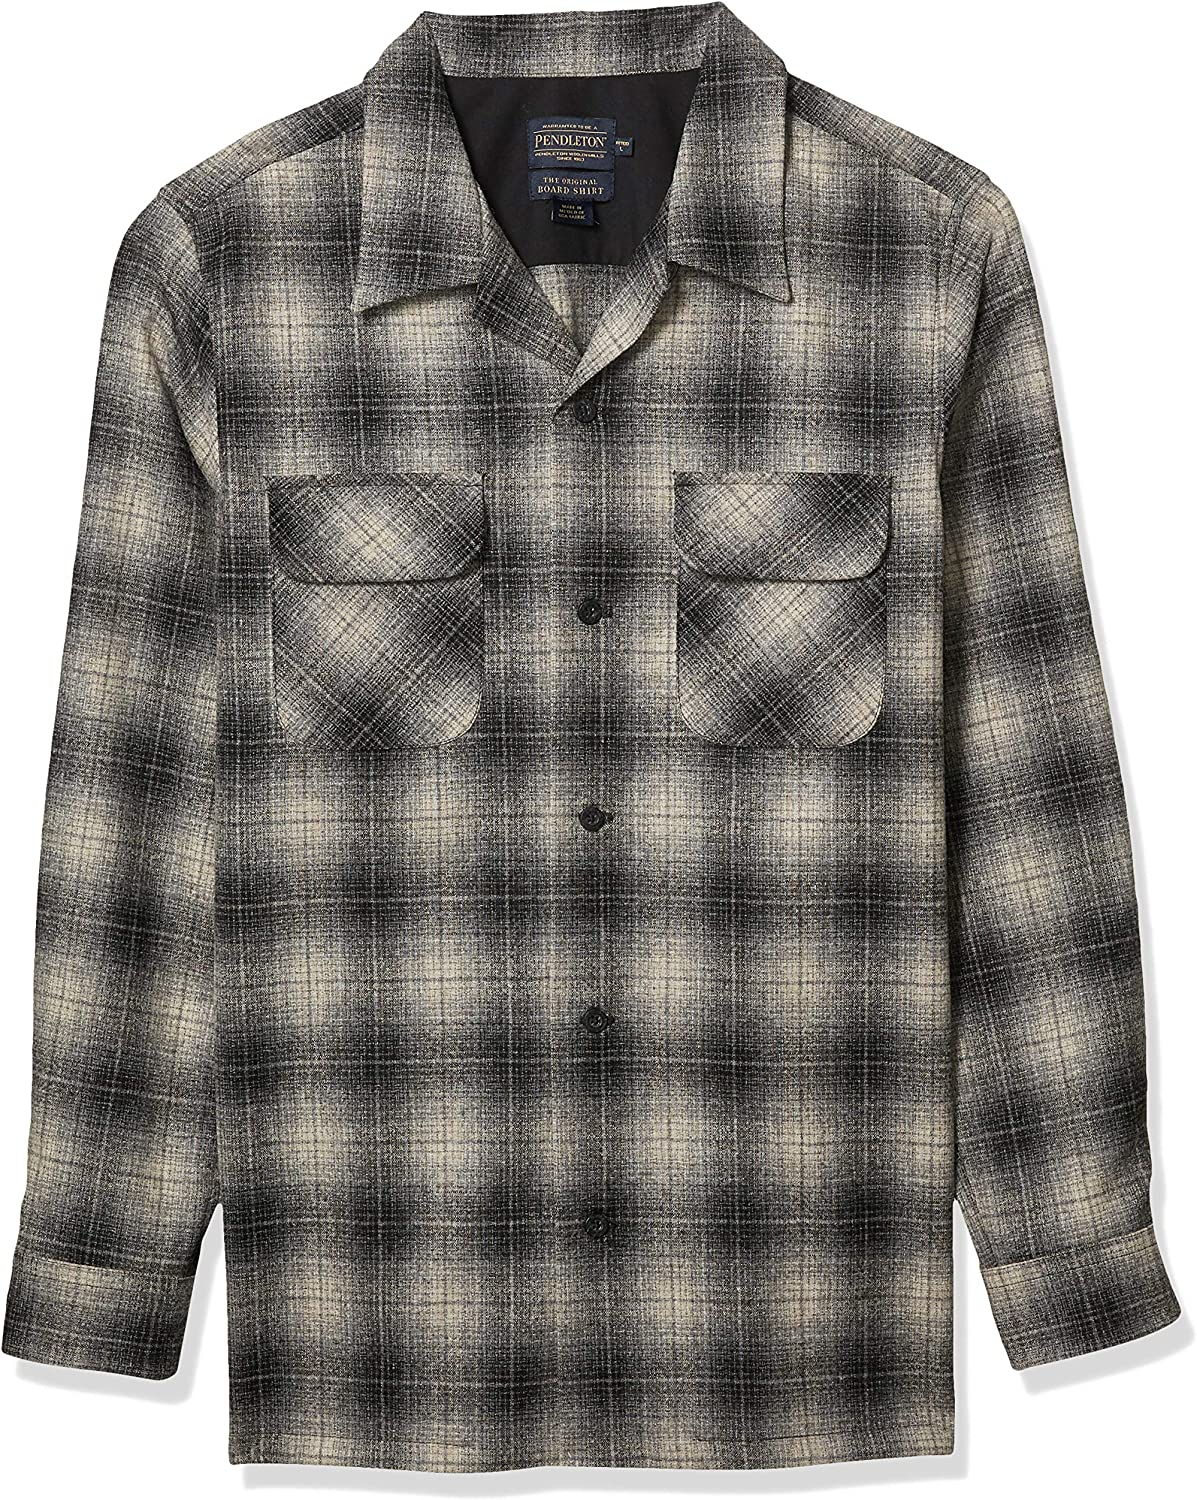 1920s Men's Dress Shirts, Casual Shirts Pendleton Mens Long Sleeve Fitted Board Shirt $149.00 AT vintagedancer.com